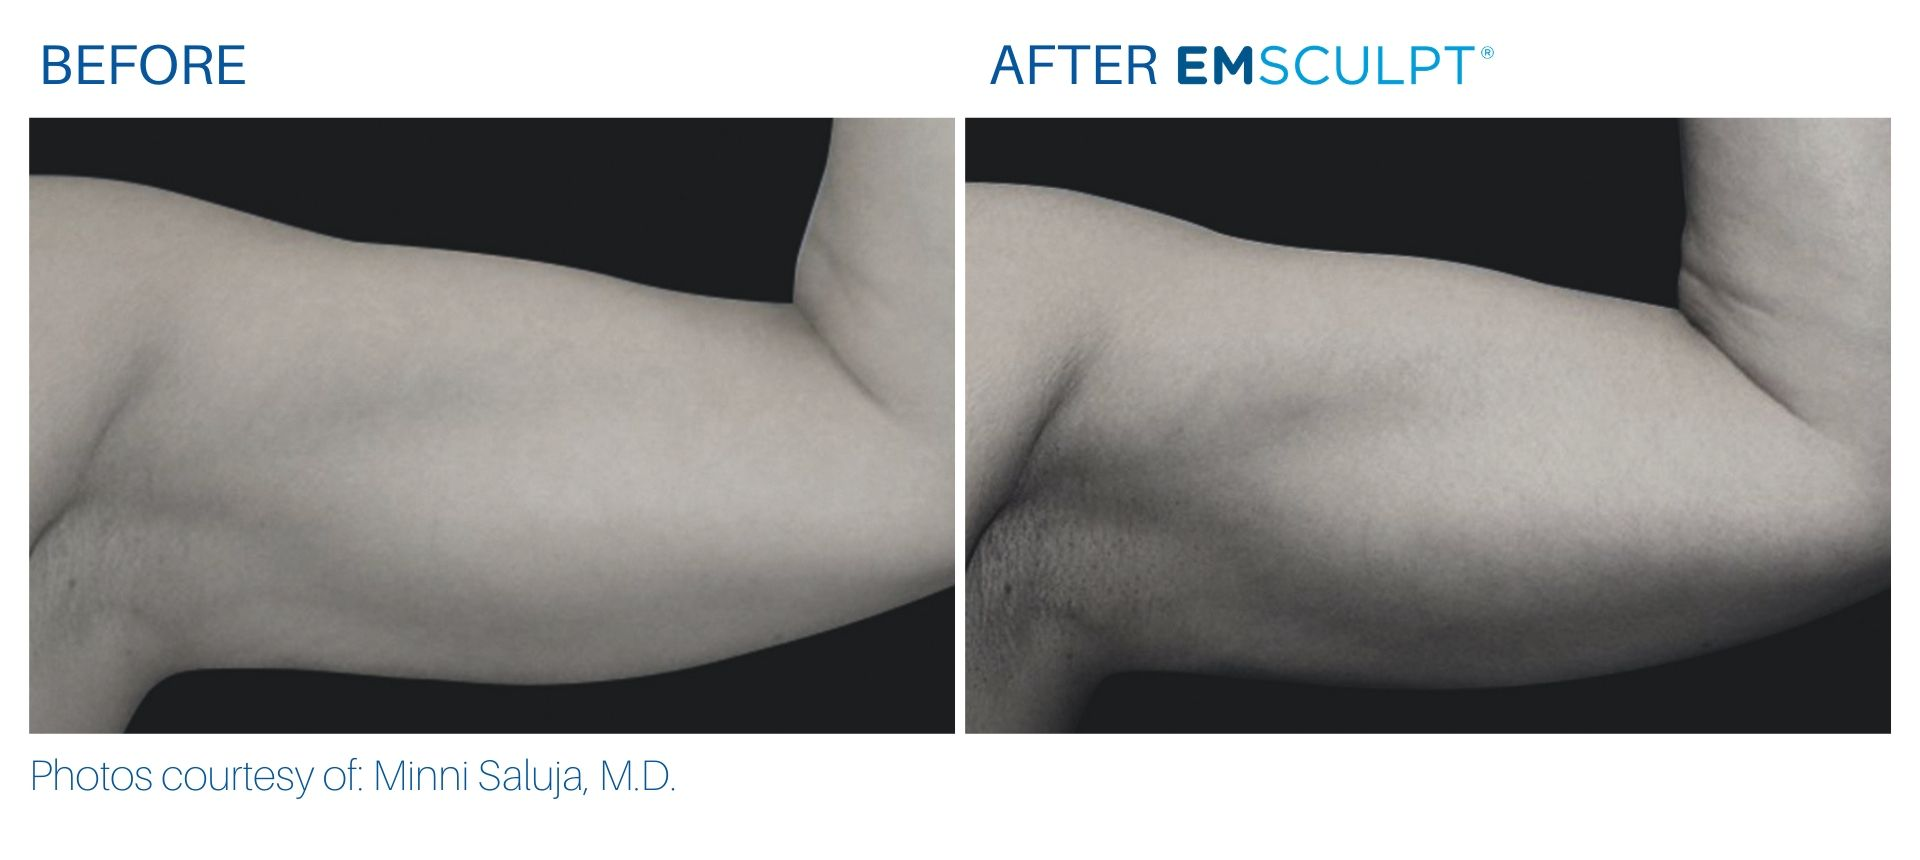 Emsculpt Before and After Arms Aura Dermatology Hamilton, NJ